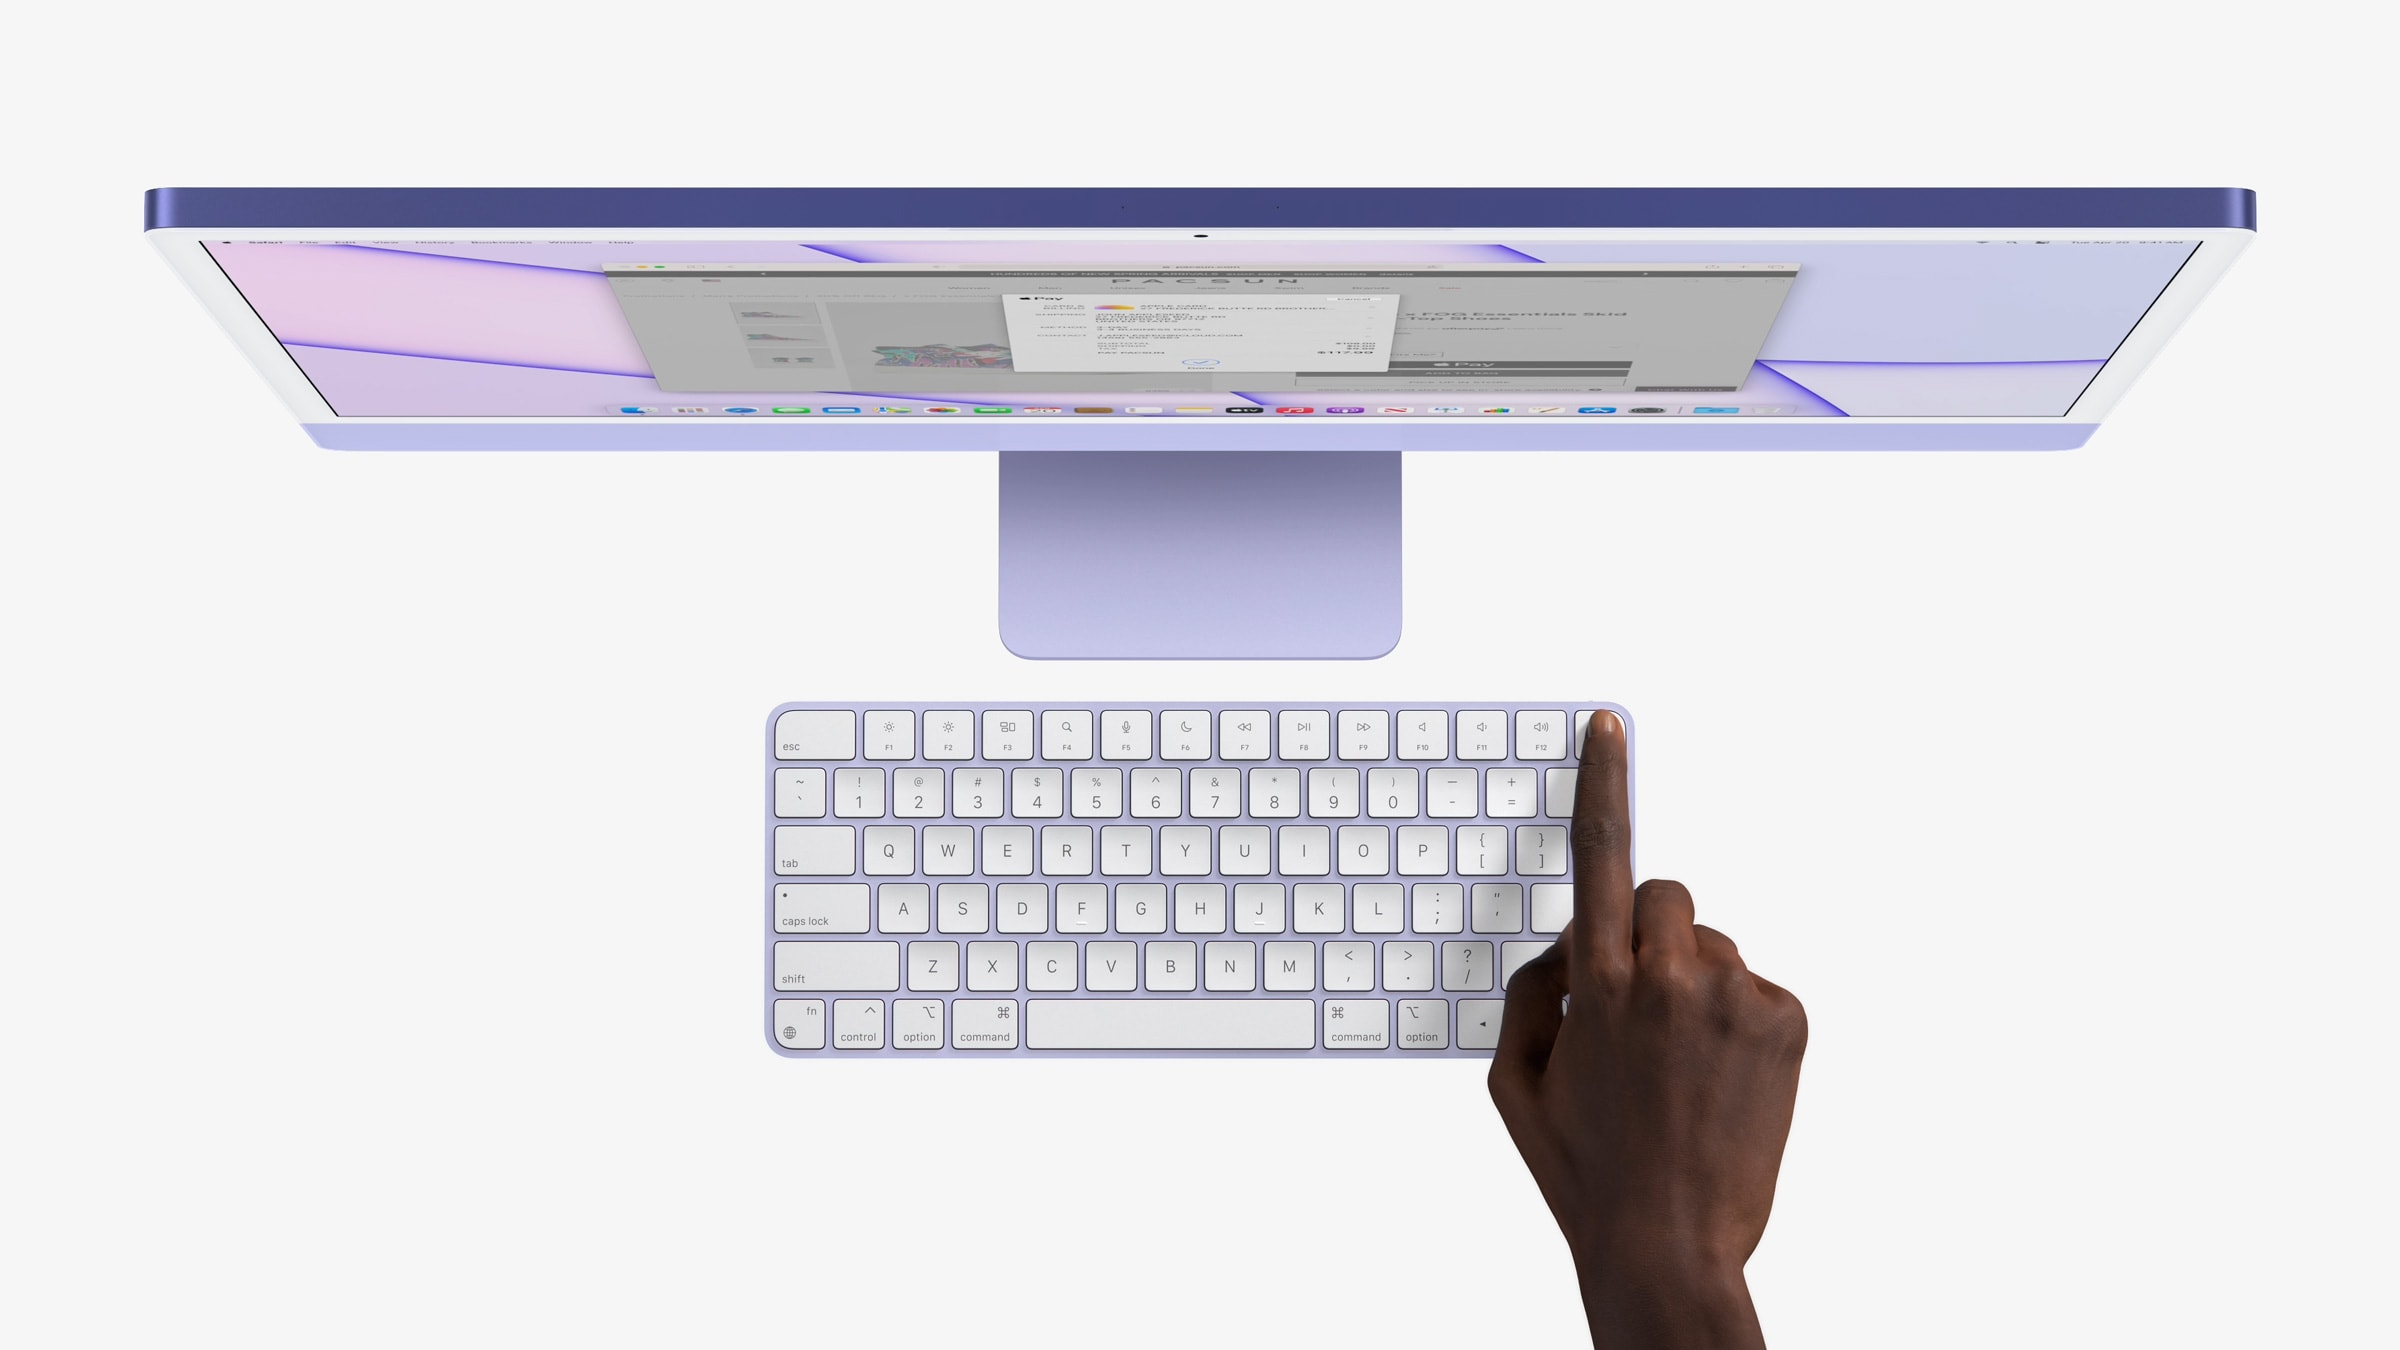 M1 iMac gets Touch ID